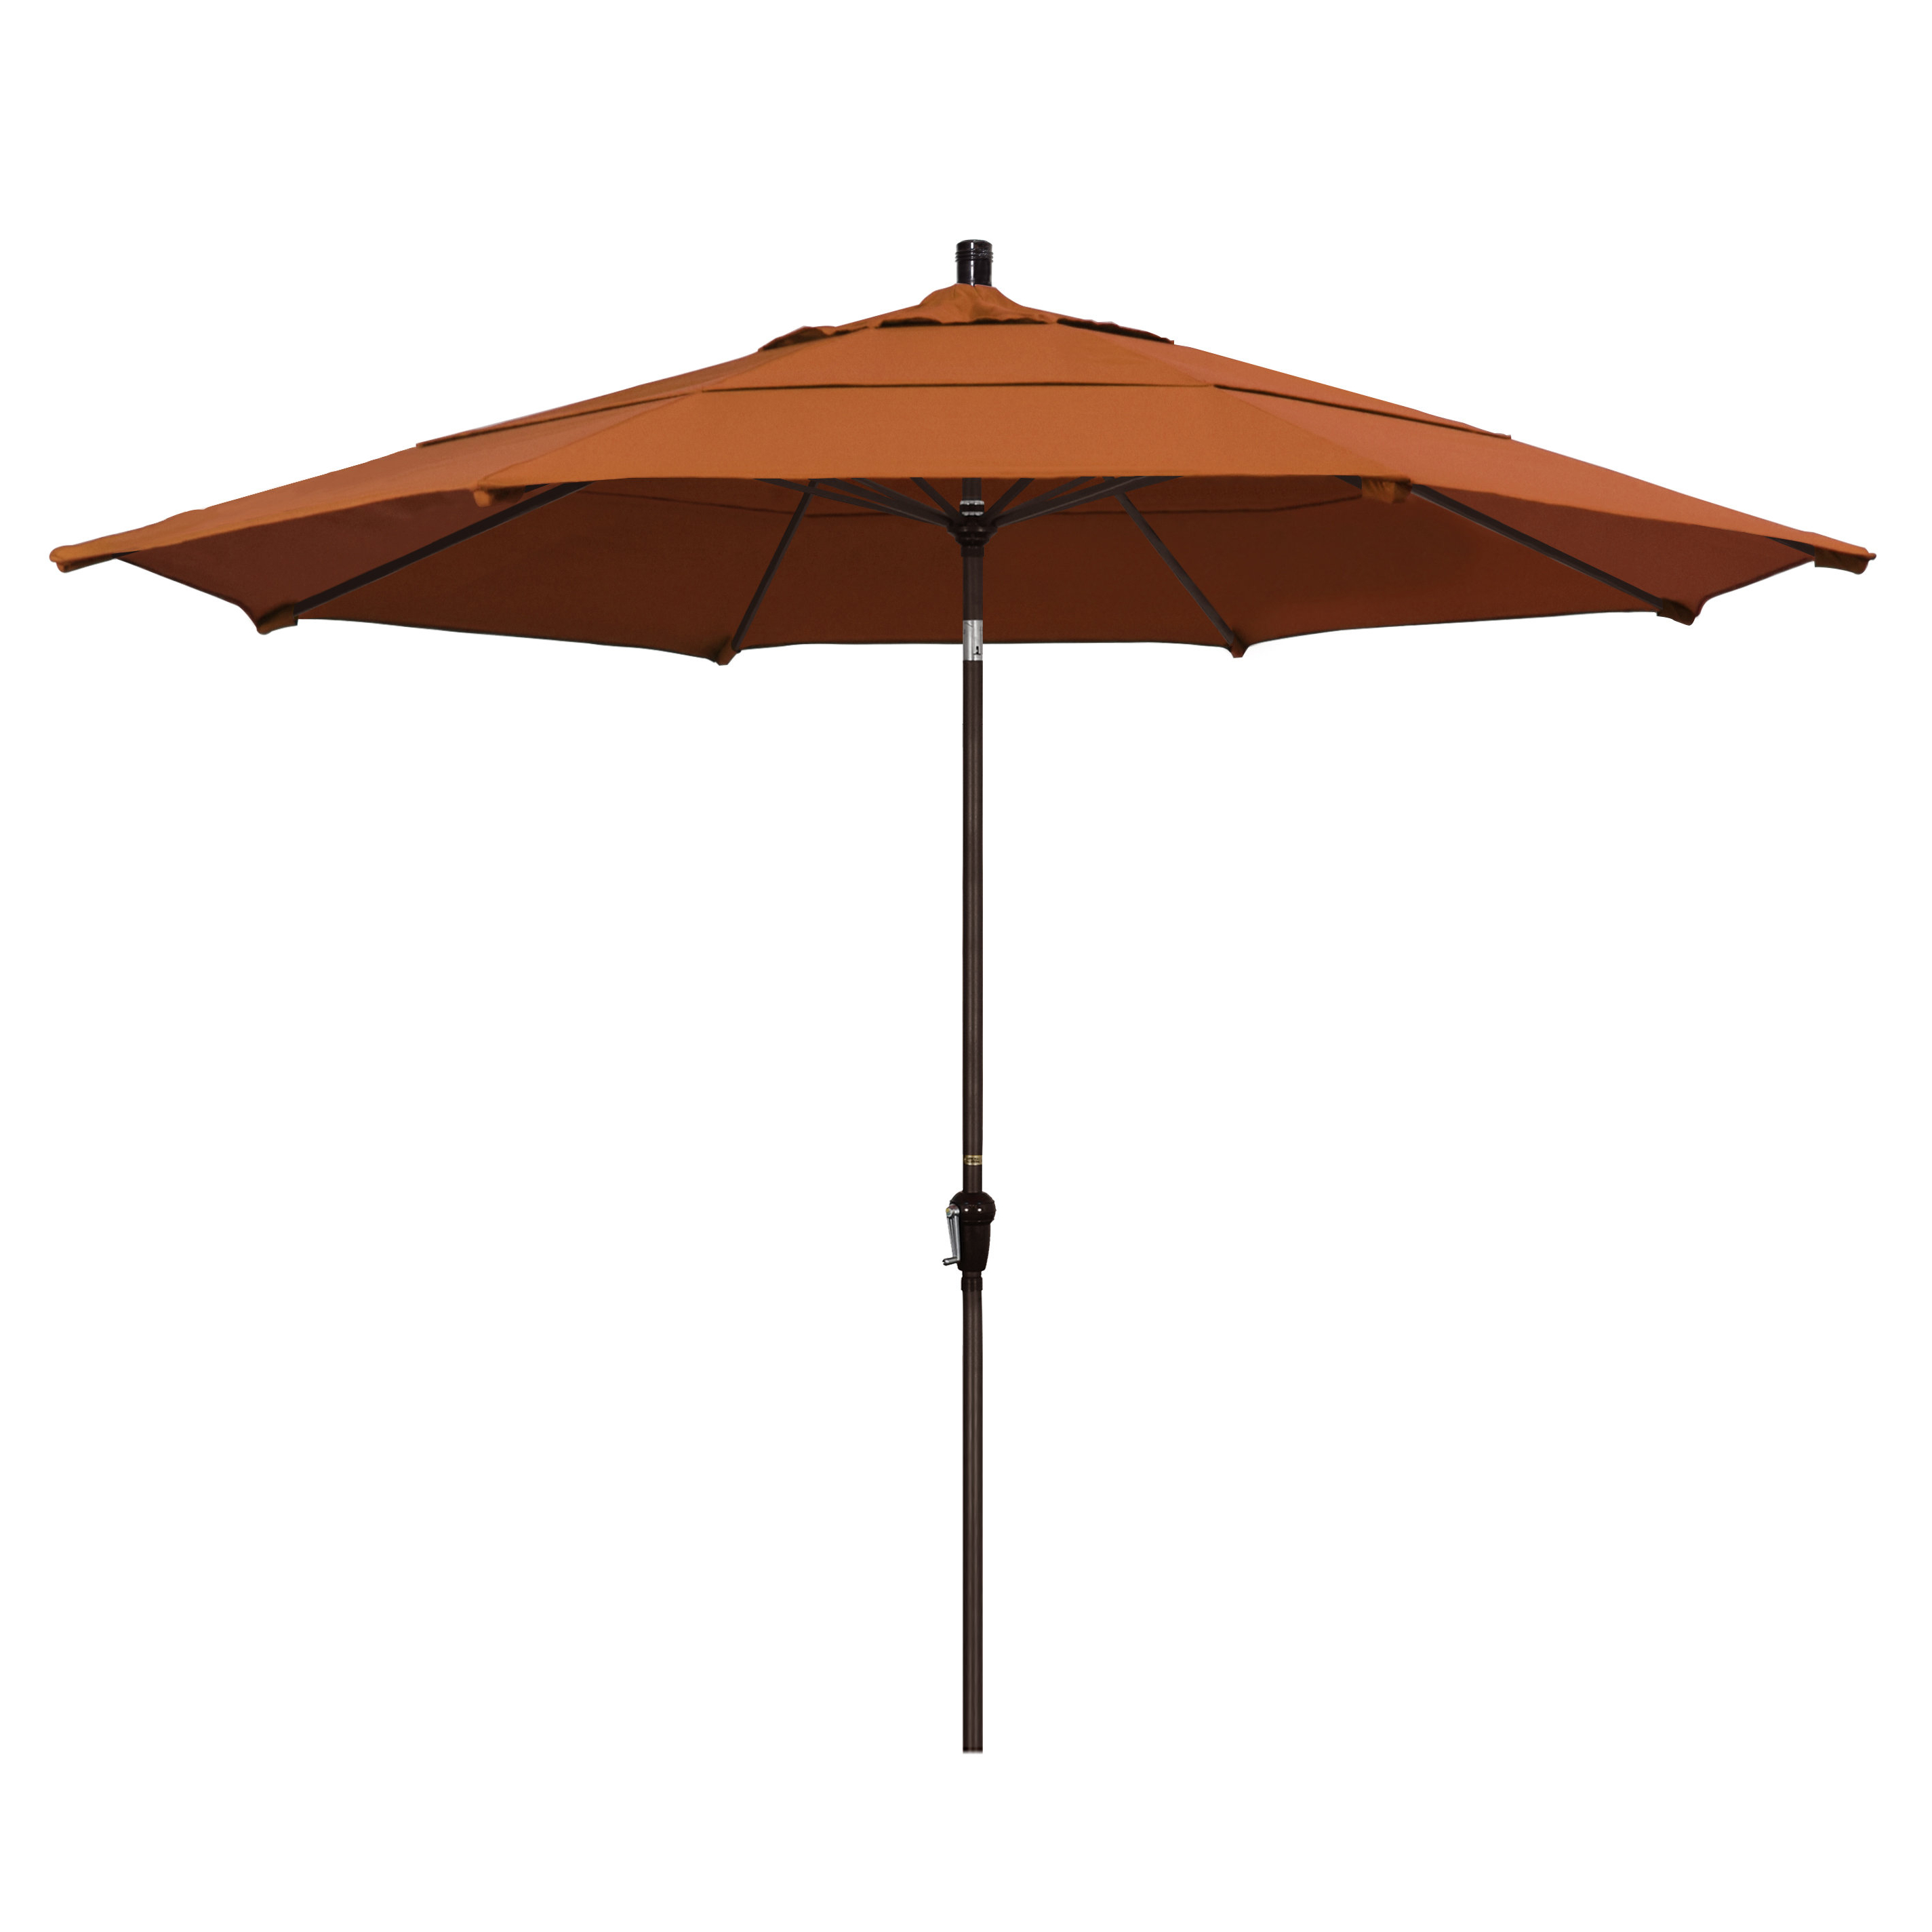 Mullaney Market Umbrellas Throughout Fashionable Mullaney 11' Market Sunbrella Umbrella (Gallery 3 of 20)